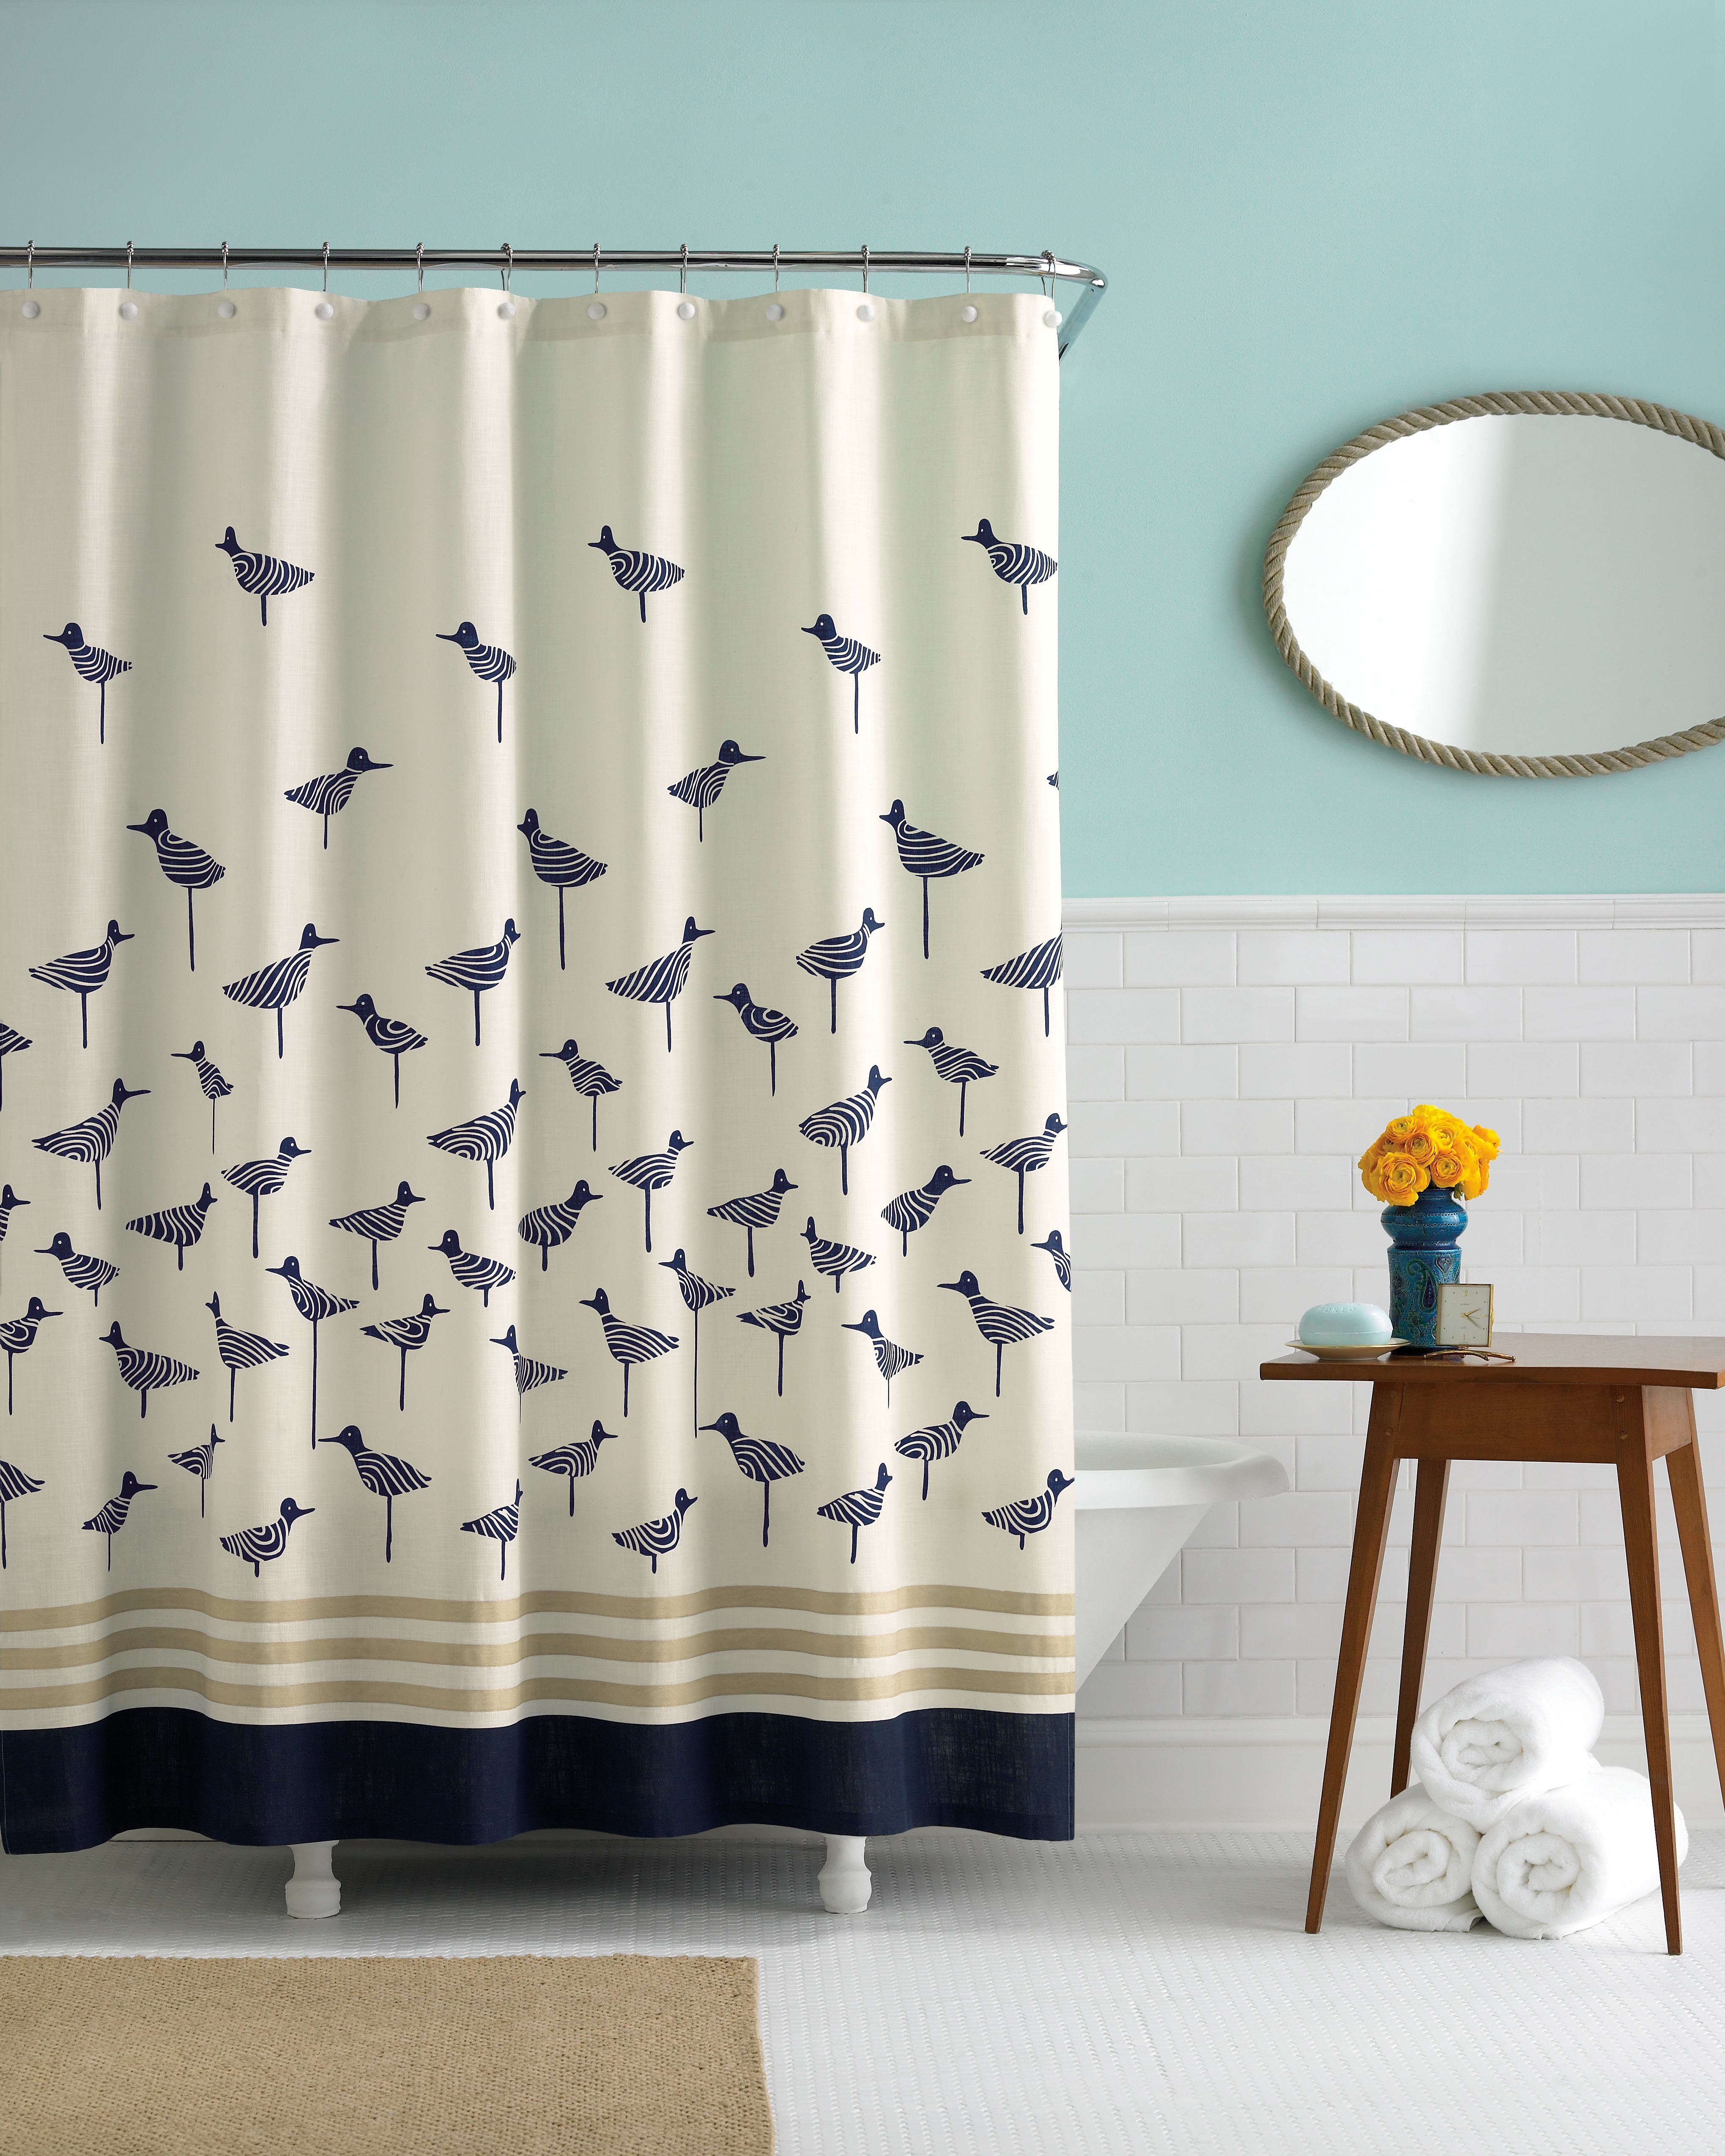 bed bath and beyond shower curtains: offer great look and functional - homesfeed